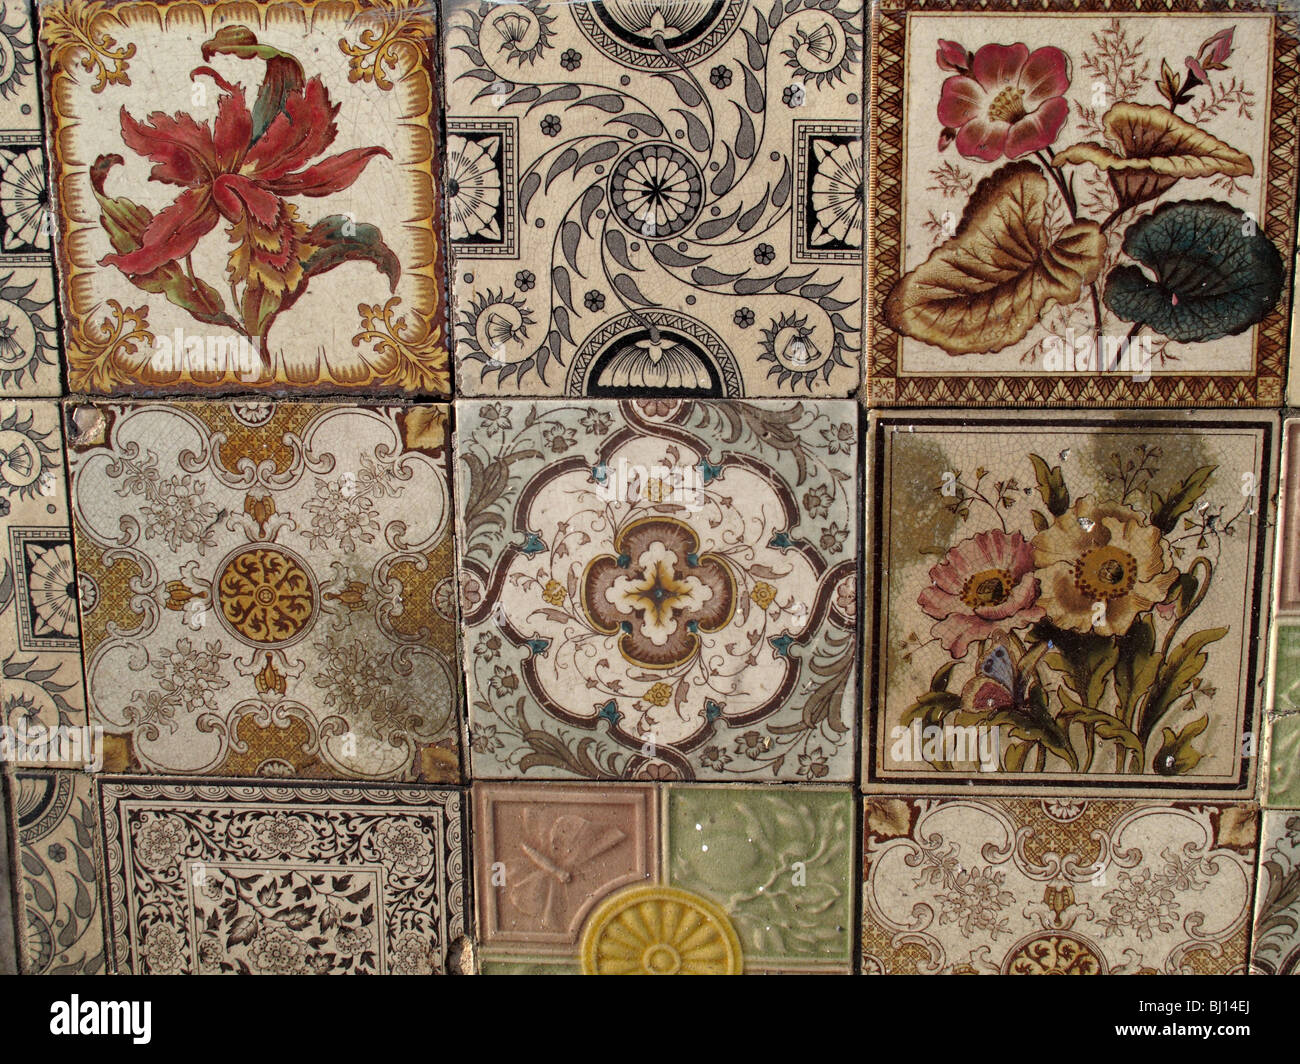 Old decorative tiles - Stock Image